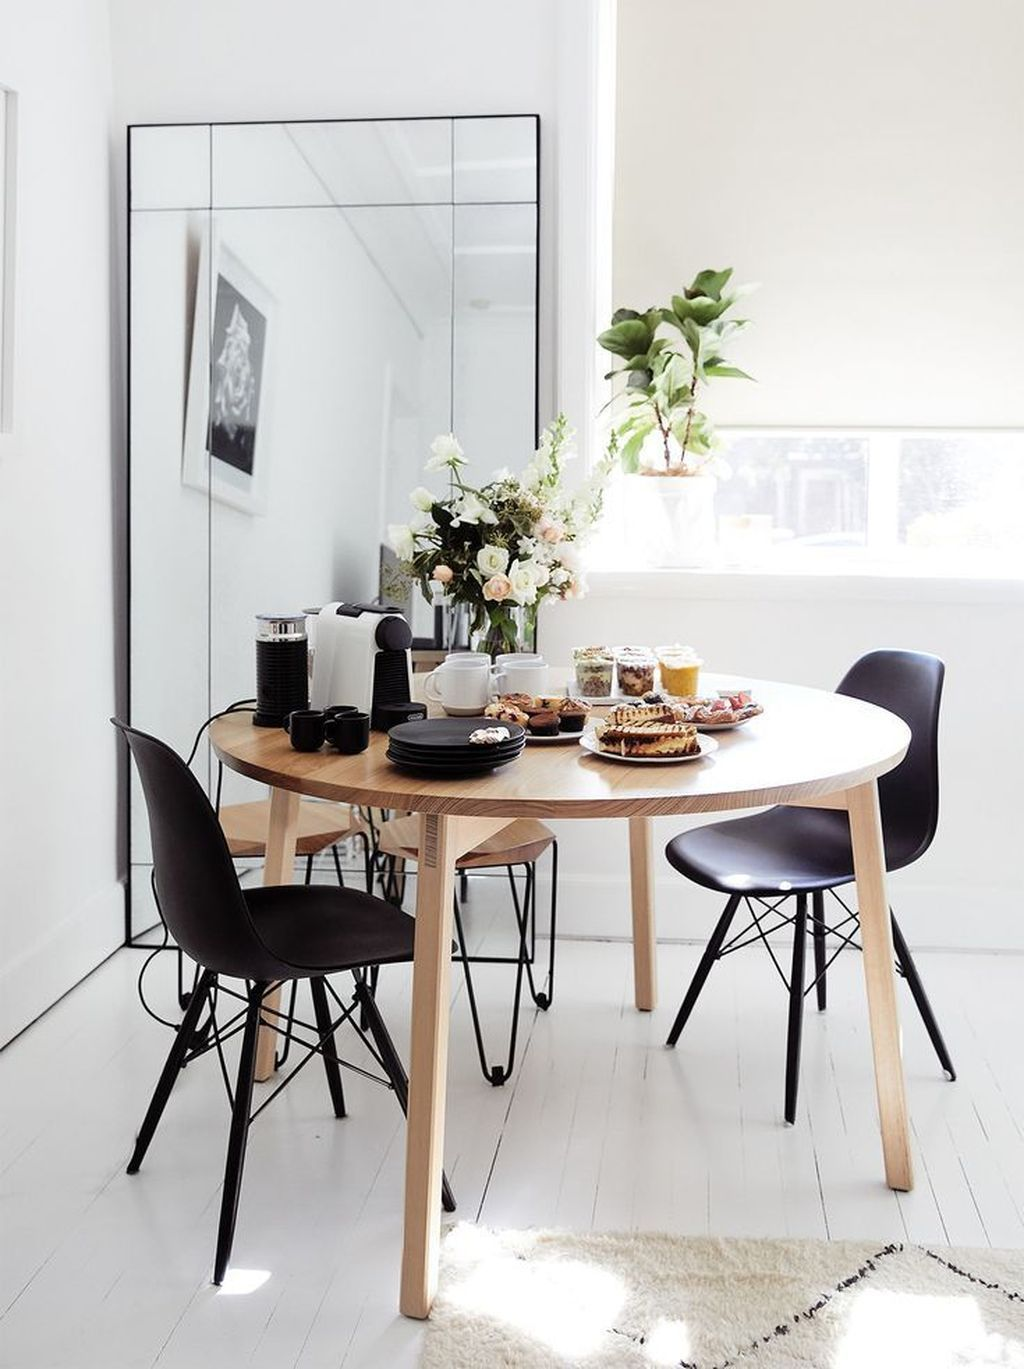 Captivating Minimalist Style For Dining Room Is Constantly A Smart Idea. Dining Room  Should Be Quiet Location With Great Lights. If You Are Follower Of  Minimalist ...